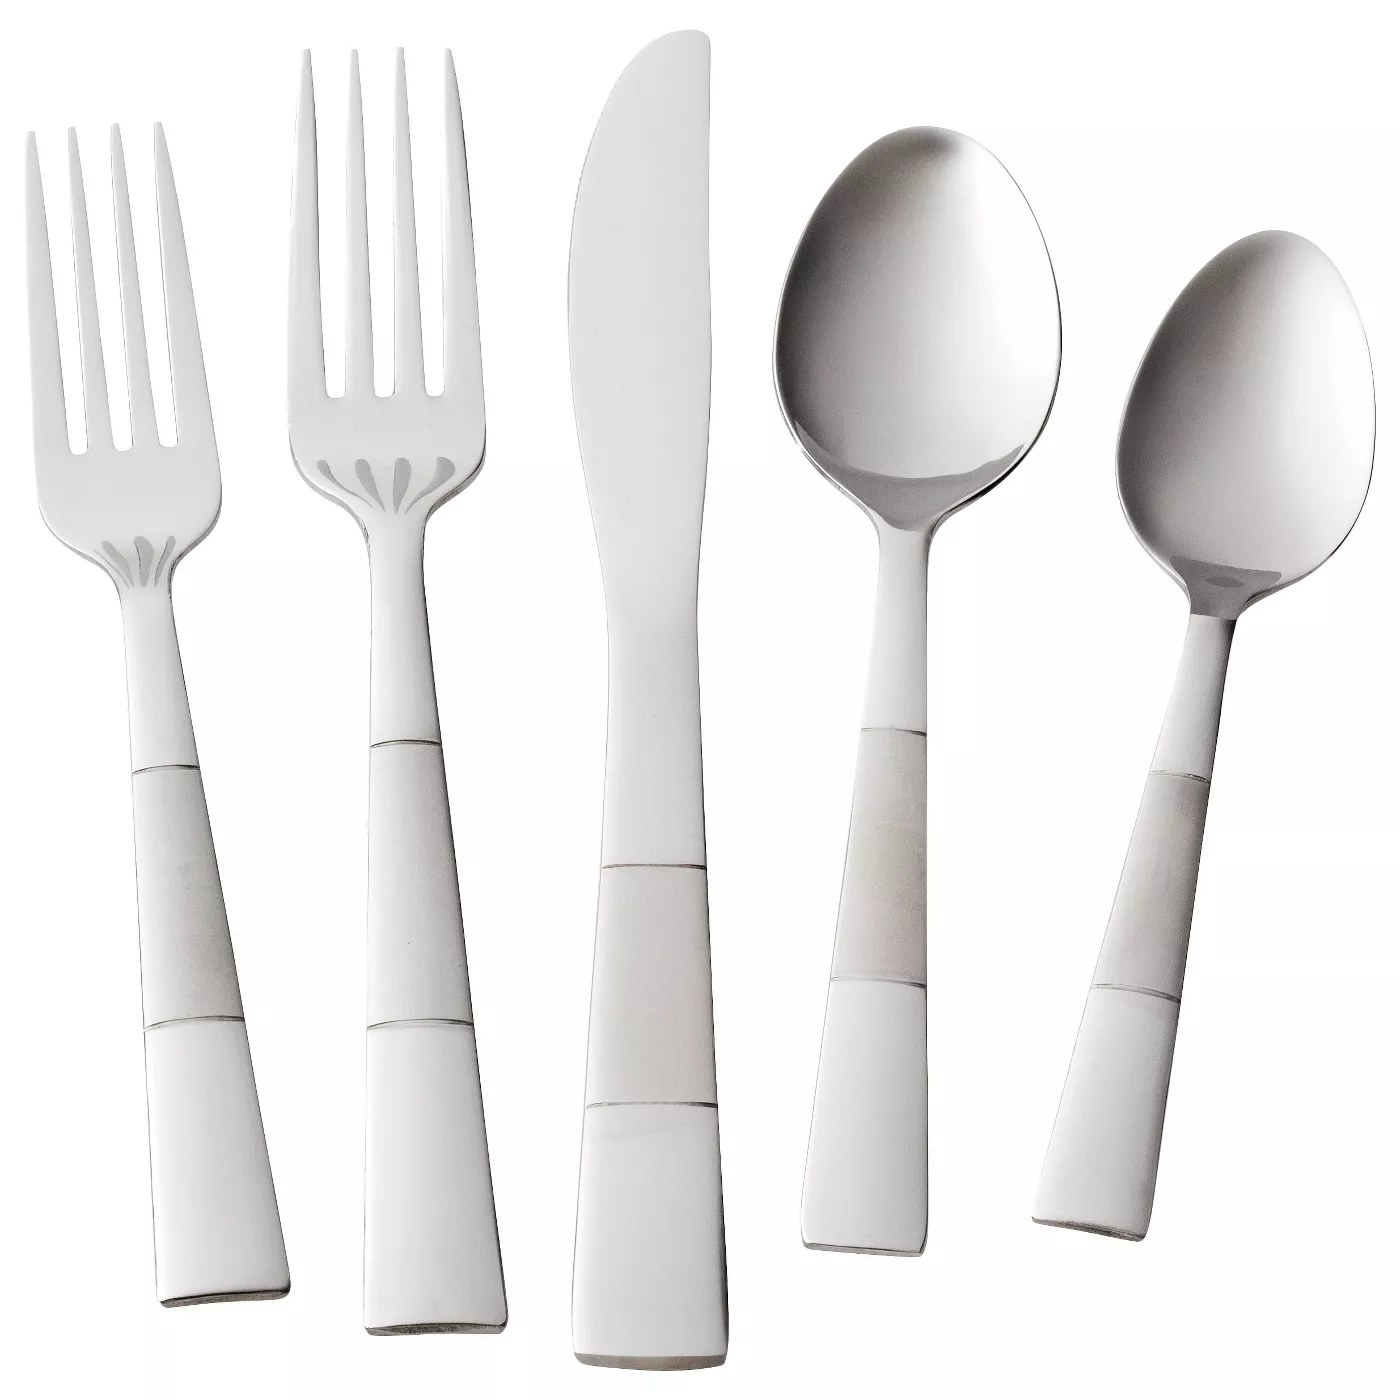 A silverware setting with a salad fork, dinner fork, knife, tablespoon and teaspoon